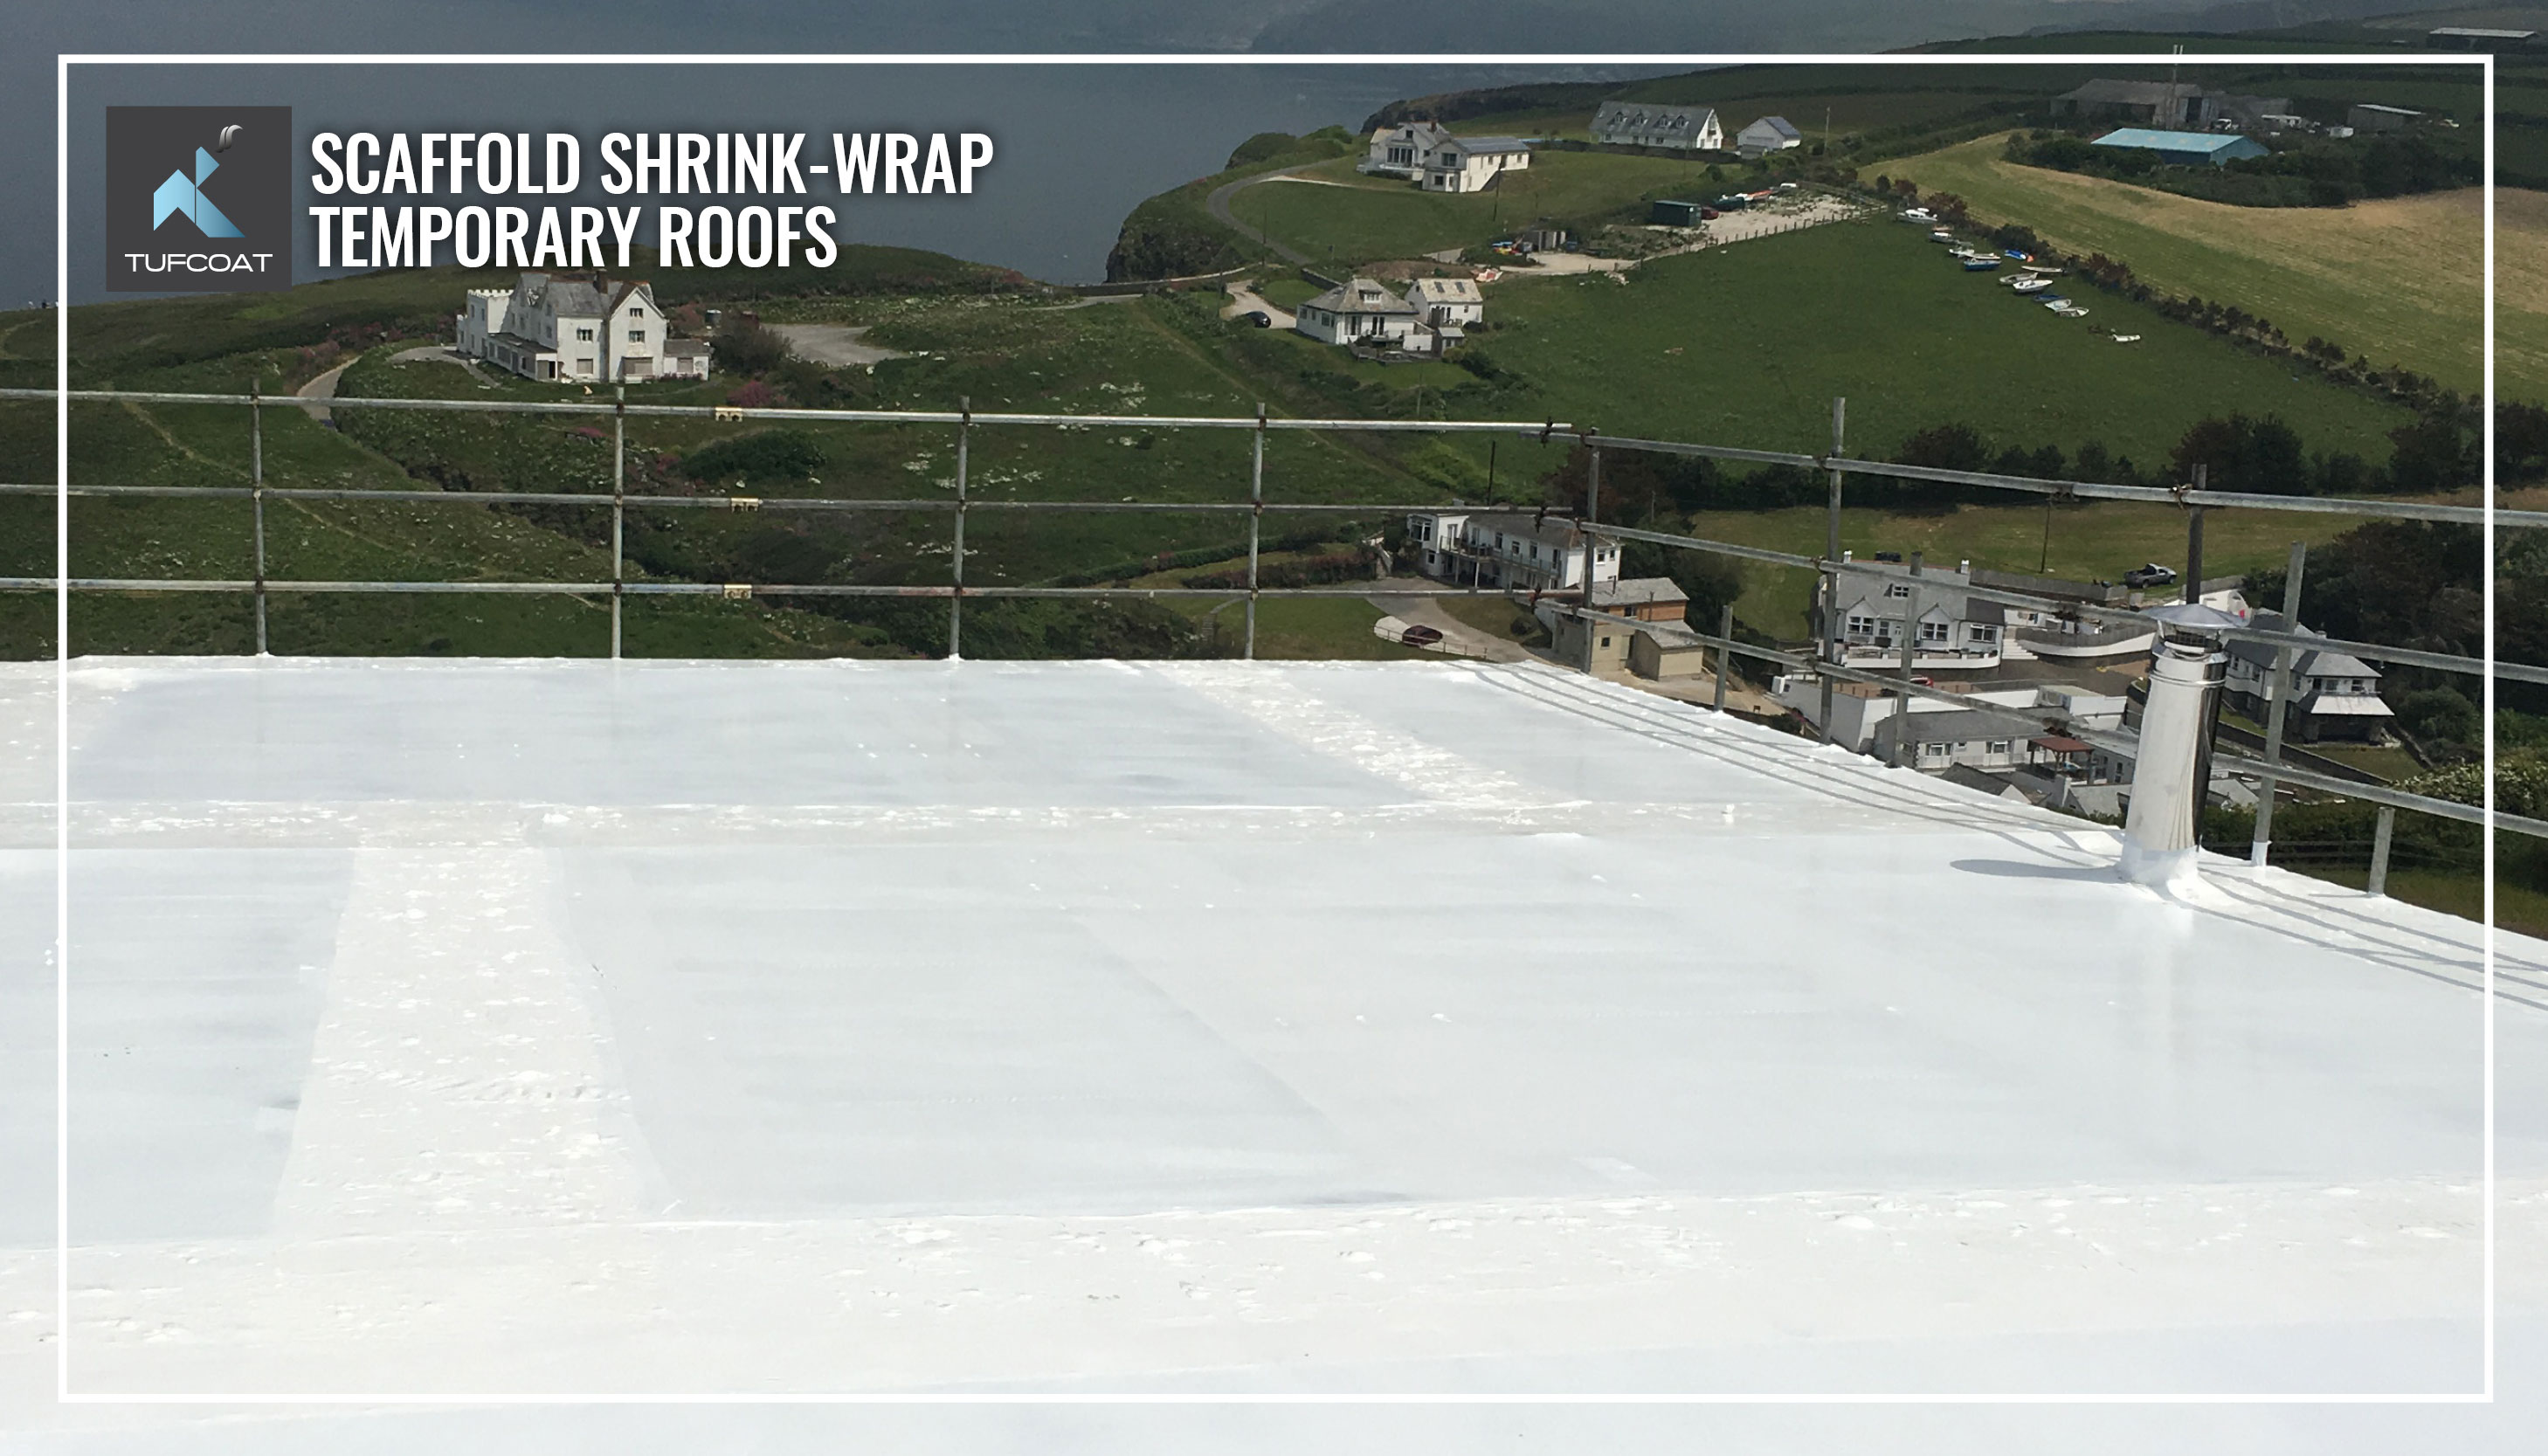 Tufcoat-Scaffold-shrink-wrap-temporary-roof-banner